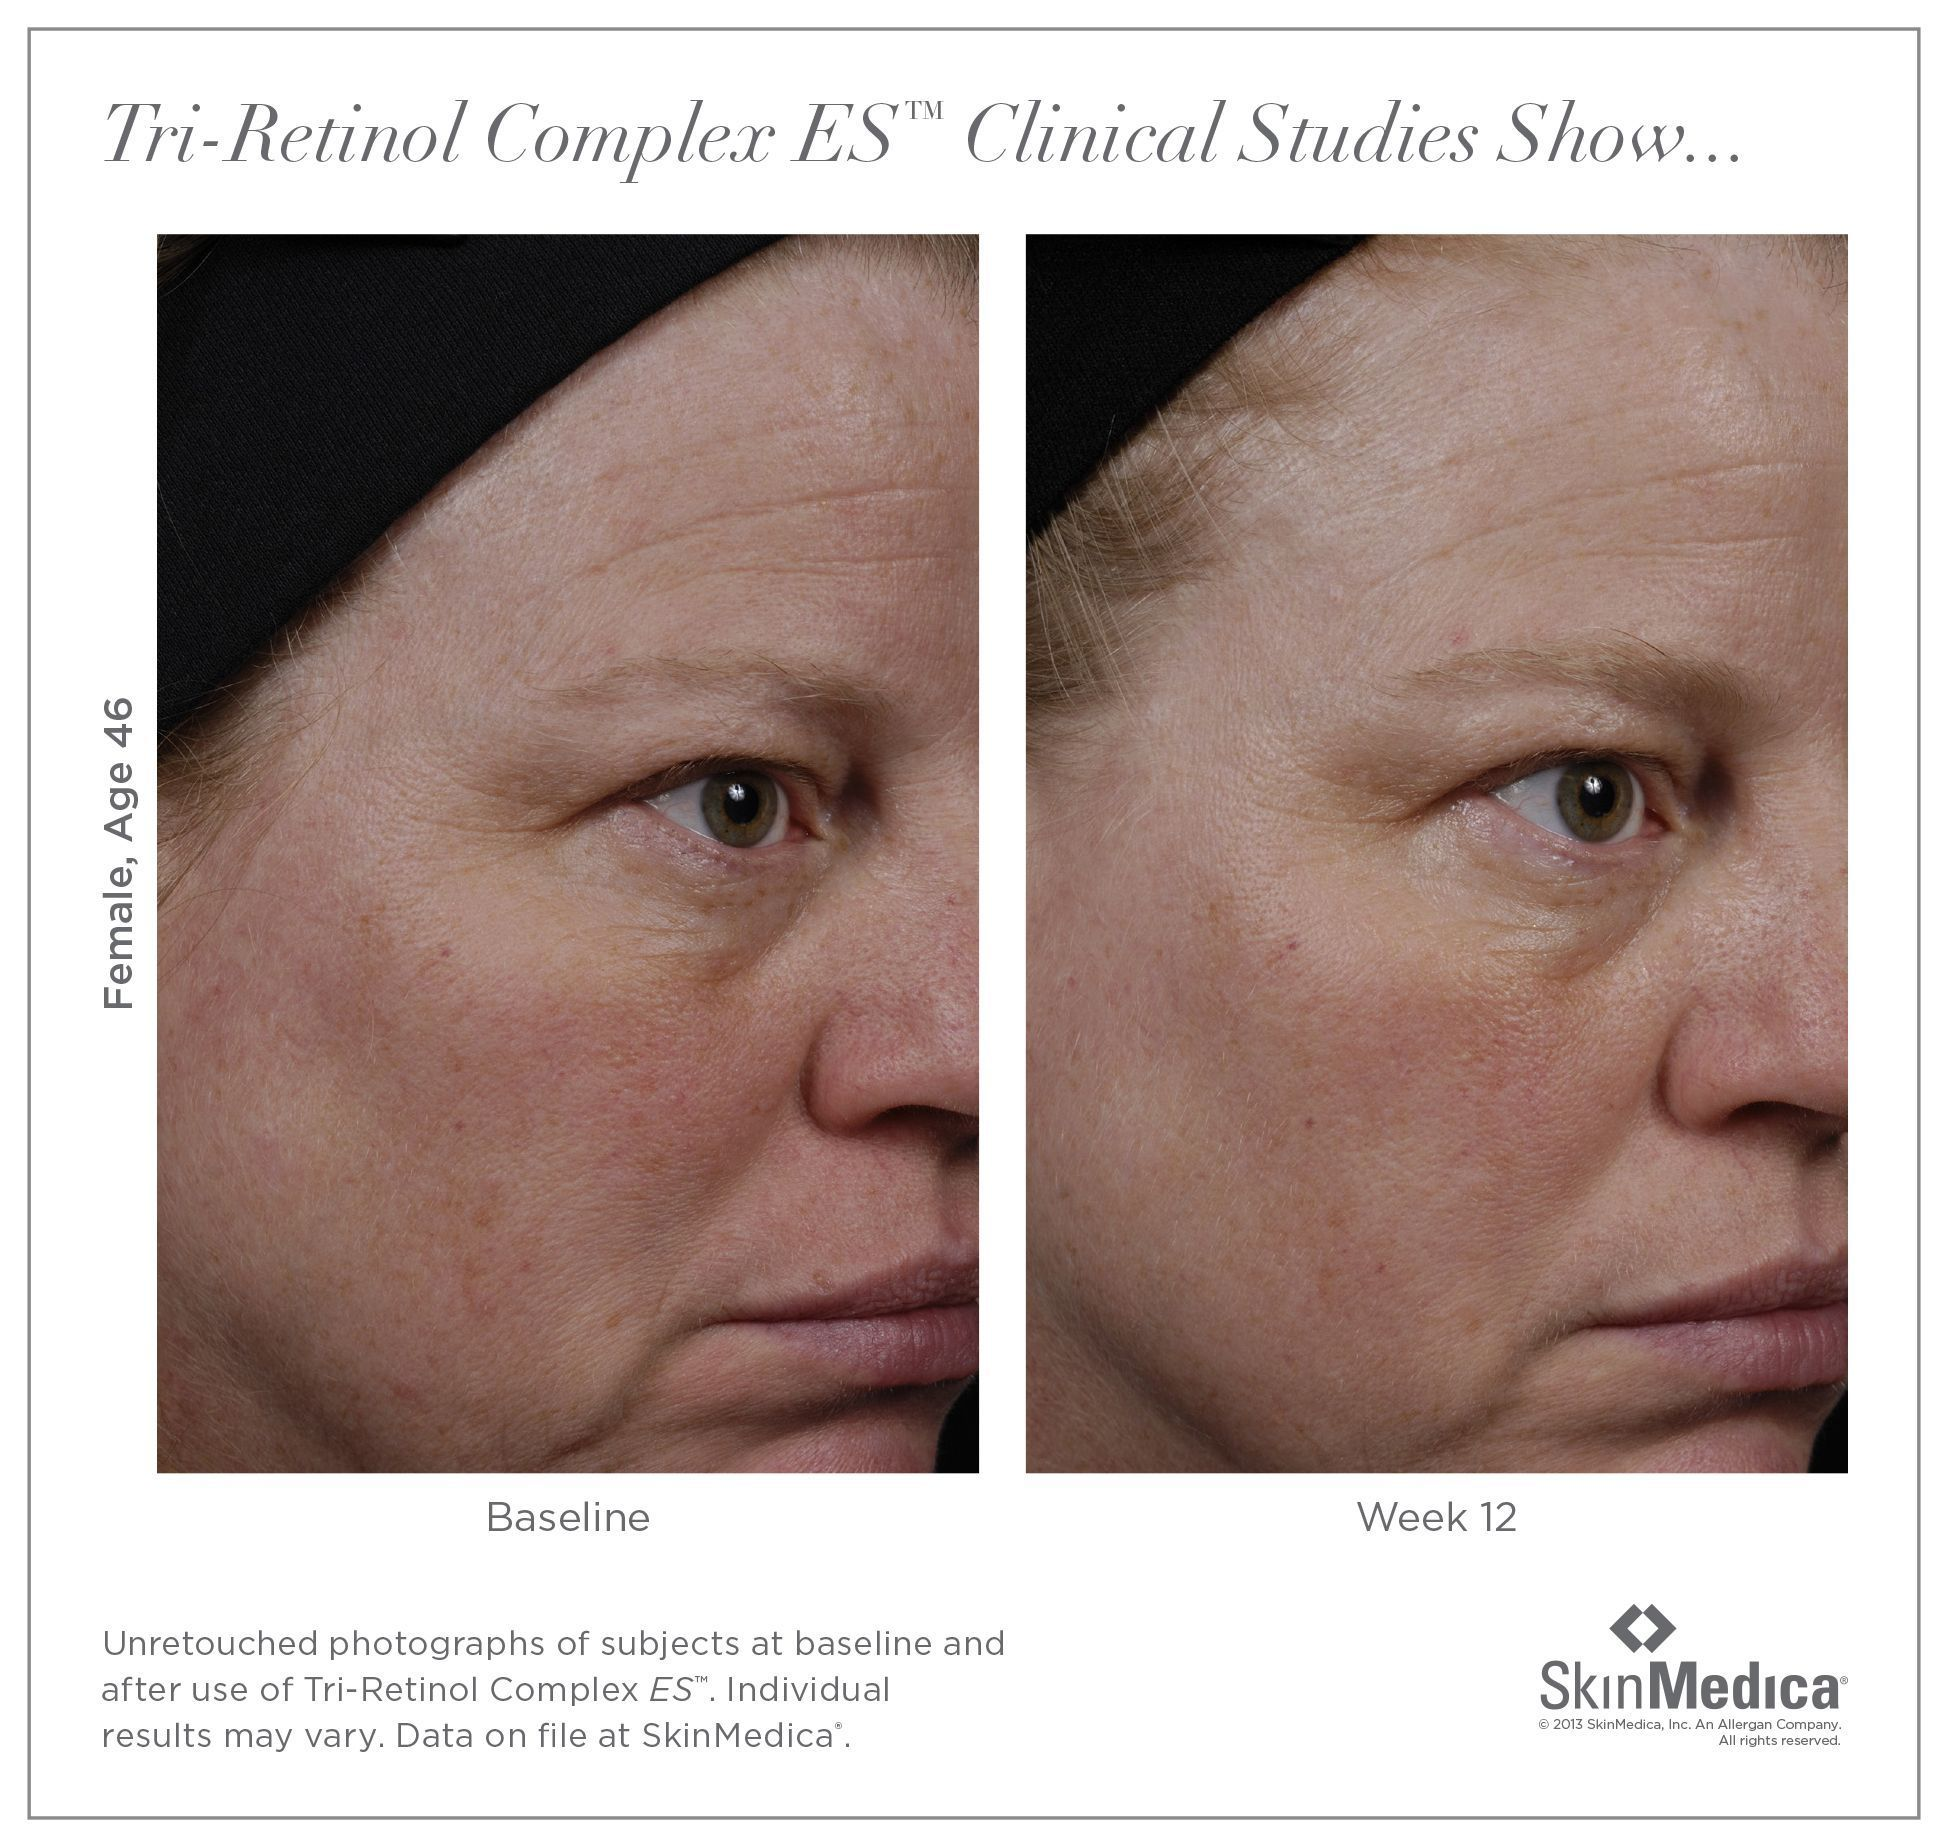 Before And After 46 Year Old Woman 3 Months Of Using Retinol Cream Skinmedica Foreveryoung Koreanskincarebeforeandafter Retinol Cream Skin Medica Retinol